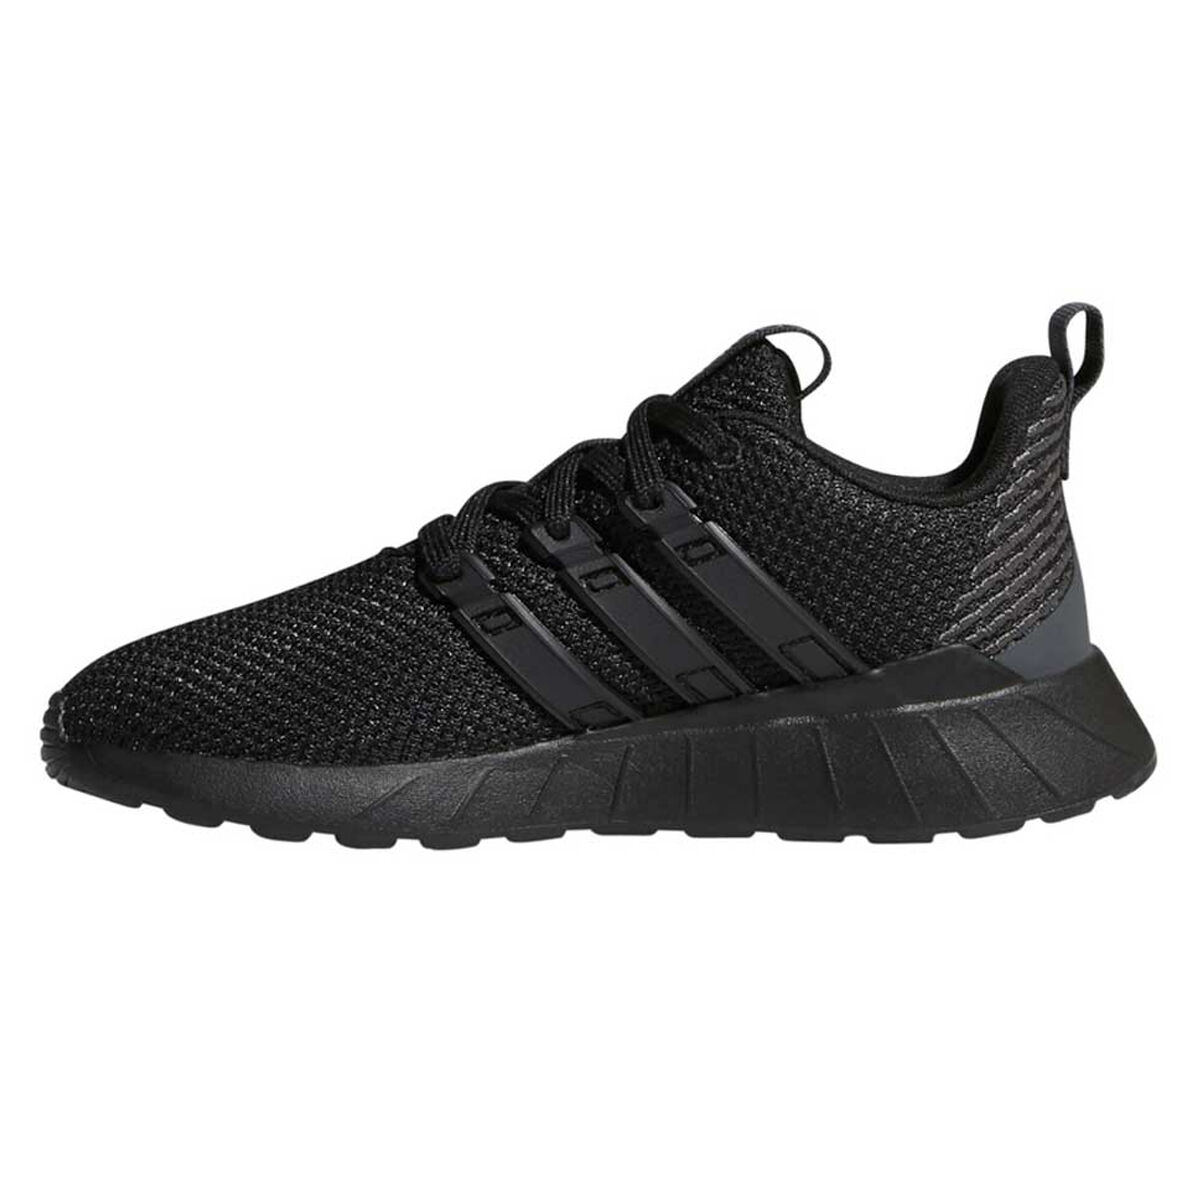 adidas Questar Flow Kids Running Shoes Black US 11